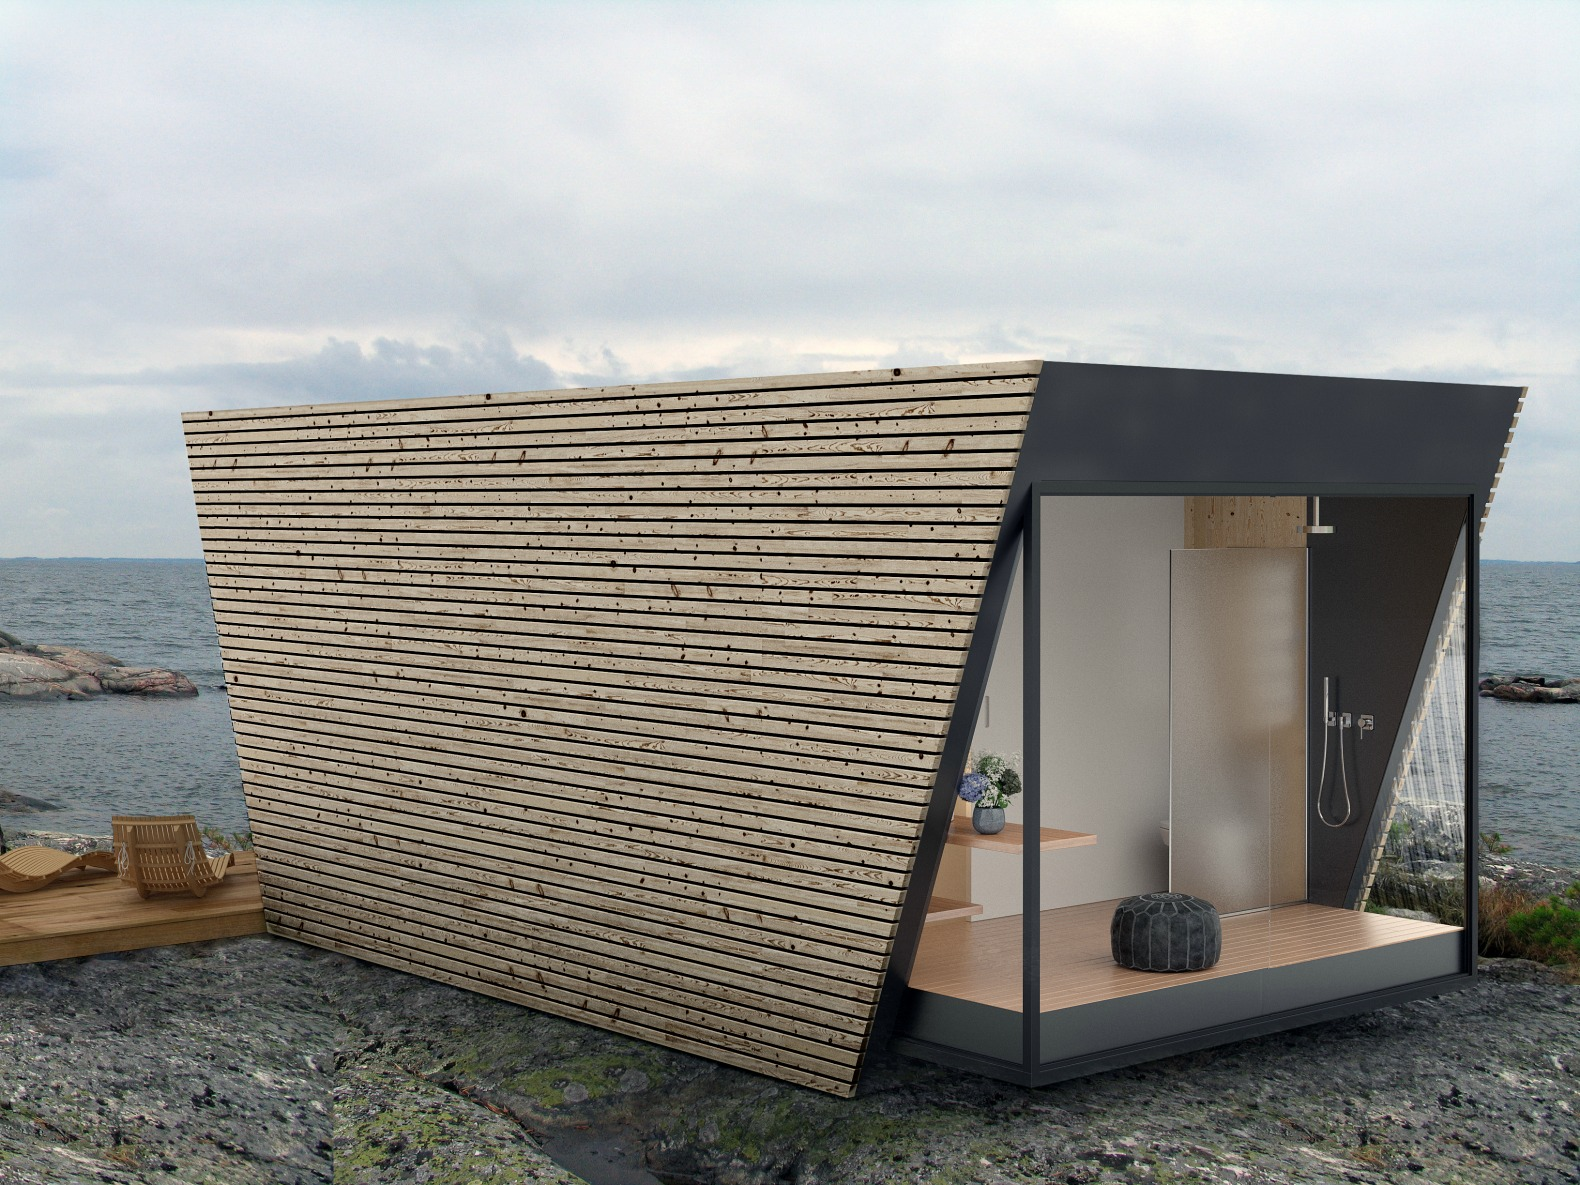 Building Modular modular building | inhabitat - green design, innovation